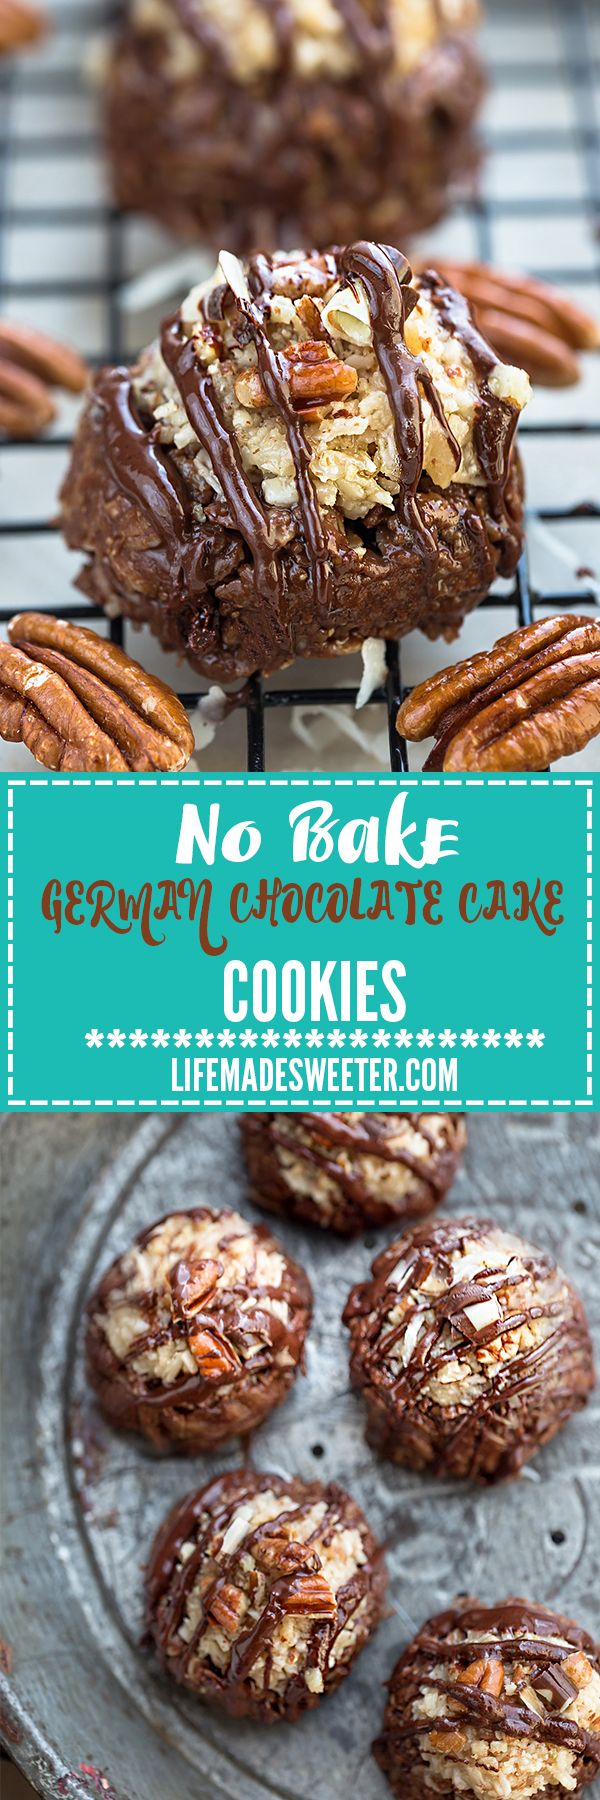 No Bake German Chocolate Cake Cookies make the perfect easy gluten free, paleo and dairy free treat. You will never guess it's healthier since it has all the classic flavors of the popular rich and decadent cake. Loaded with healthy chocolatey oats, a creamy coconut pecan frosting and best of all, no oven required!